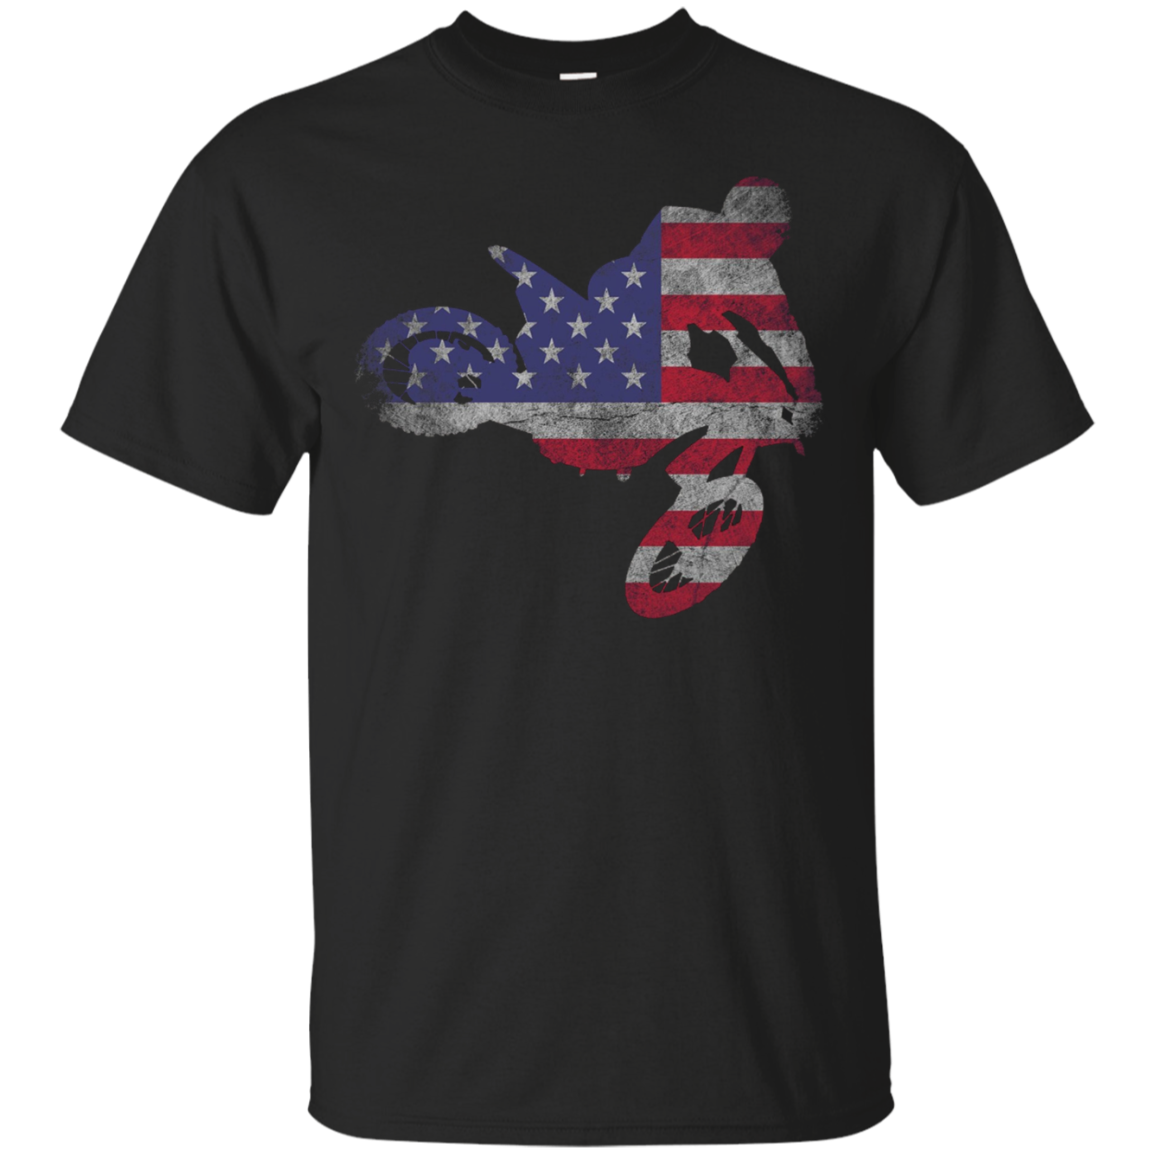 Dirt Bike American Flag T-Shirt | Motocross Enduro Shirt